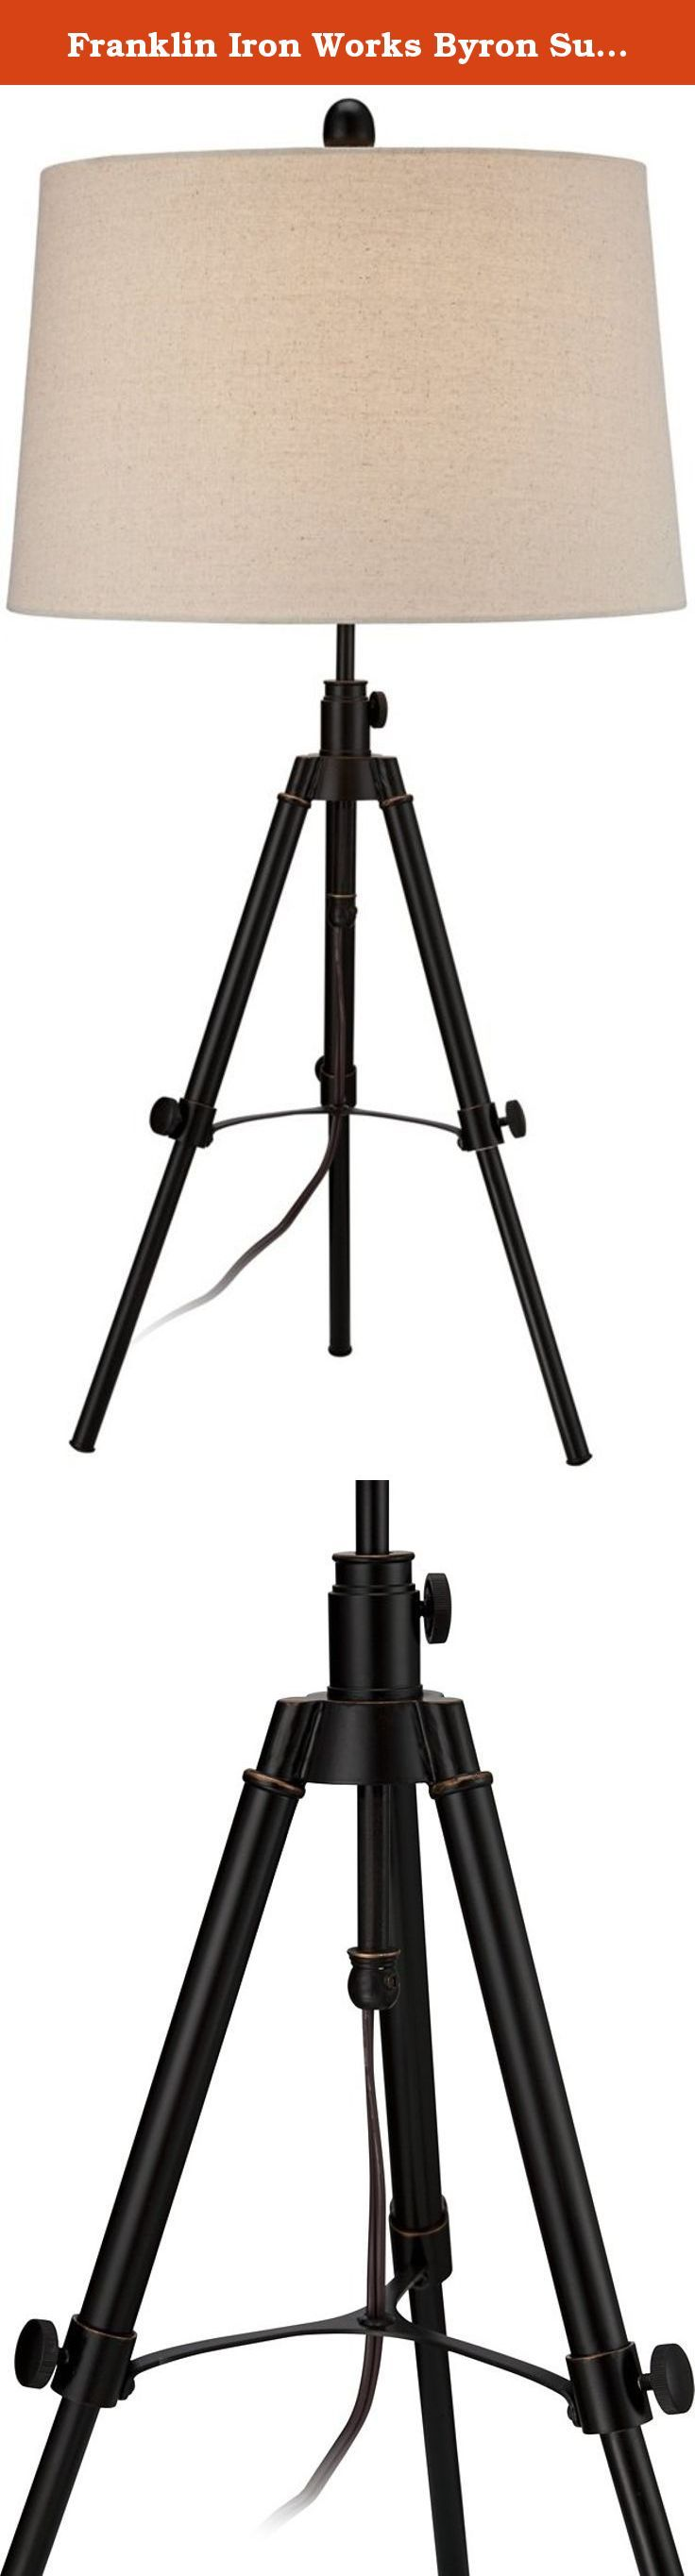 """Franklin Iron Works Byron Surveyor Table Lamp. Illuminate any space with this stylish transitional metal table lamp. The tripod base is topped with a beige drum shade that will match a variety of decor styles. From Franklin Iron Works. - Metal table lamp. - Design inspired by a telescope. - Drum lamp shade. - On/off switch. - Maximum 150 watt or equivalent bulb (not included). - 34"""" high. - Shade measures 14"""" across the top, 16"""" across the bottom, 10"""" on the slant."""